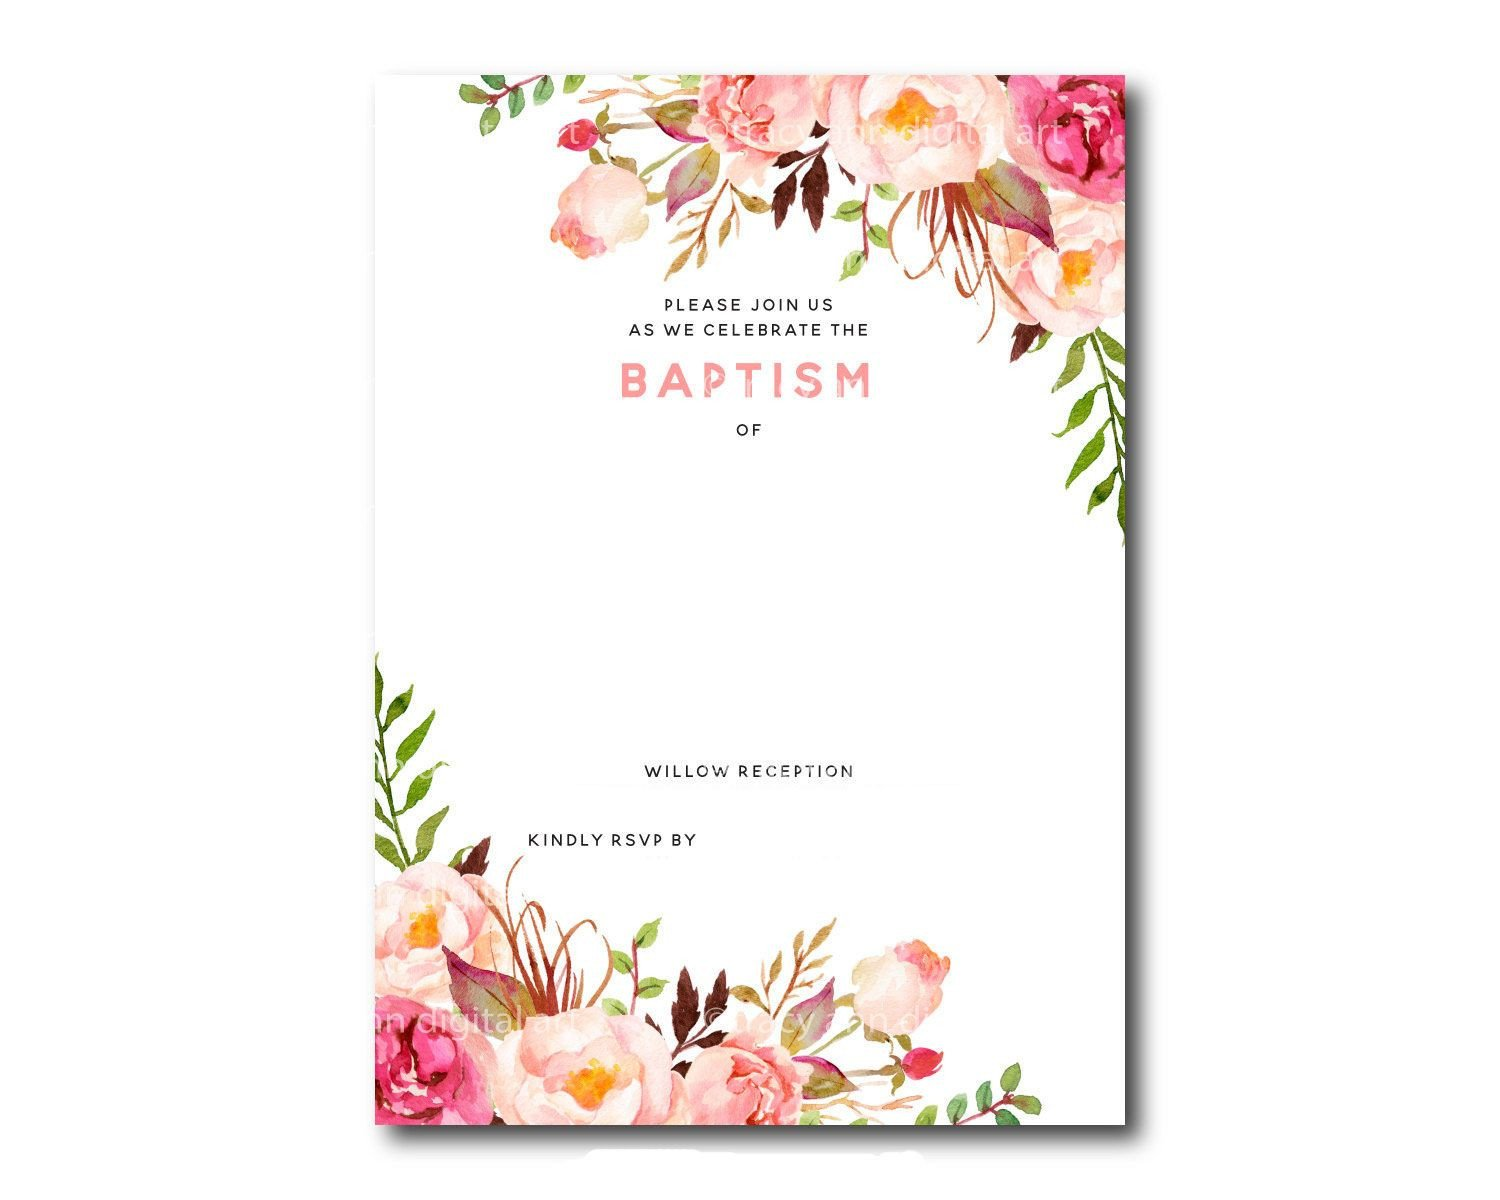 Free Printable Invitation Templates Awesome Free Template Free Printable Baptism Floral